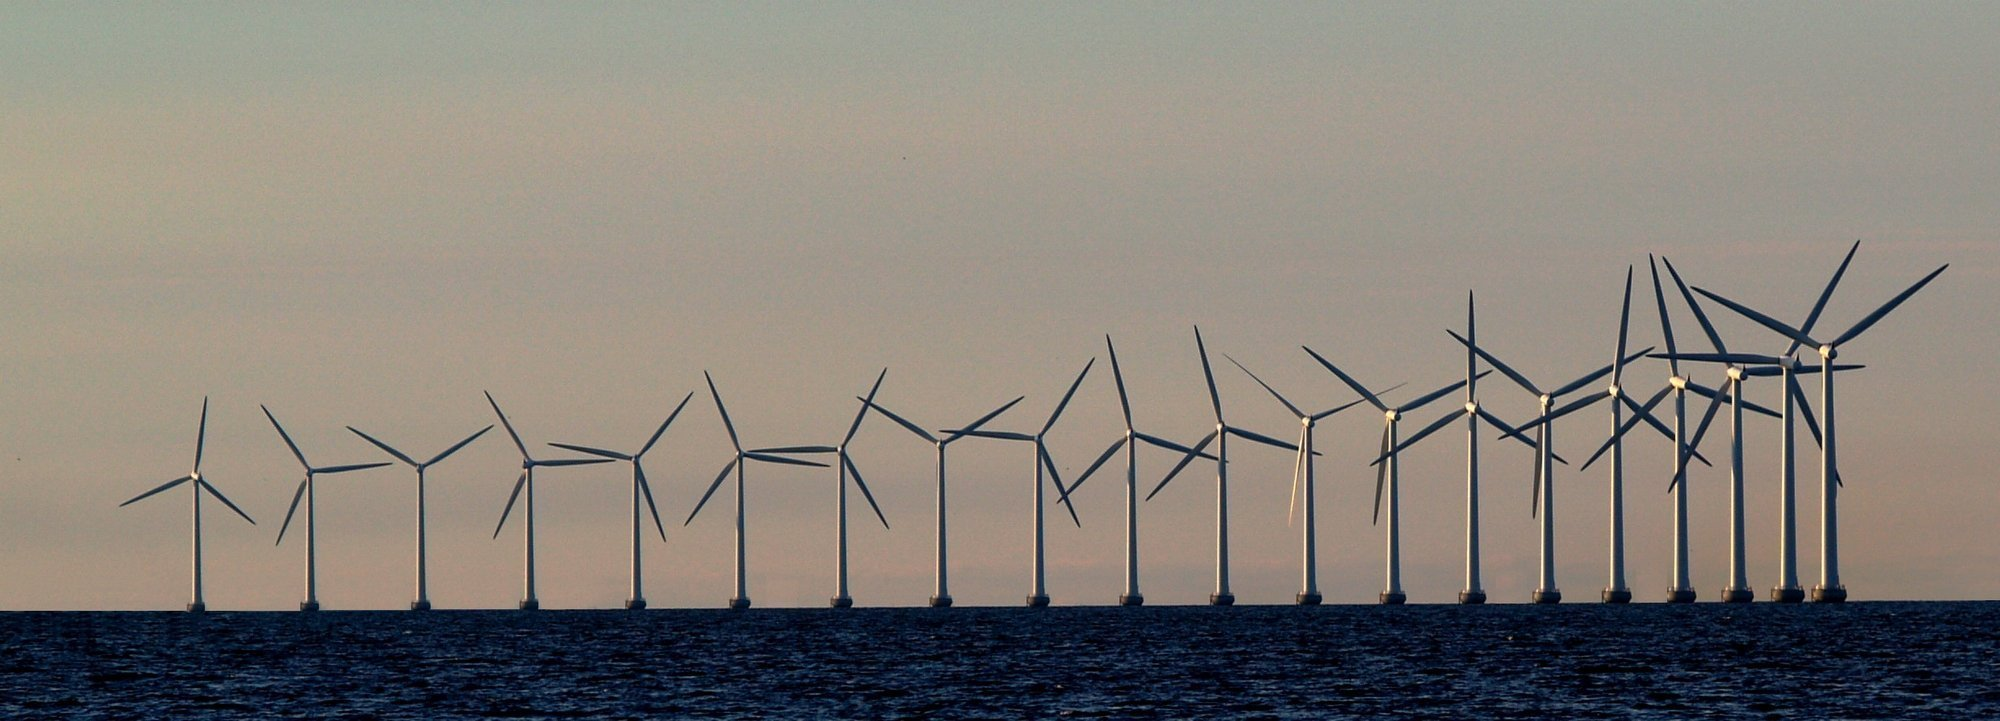 offshore wind turbines in the distance